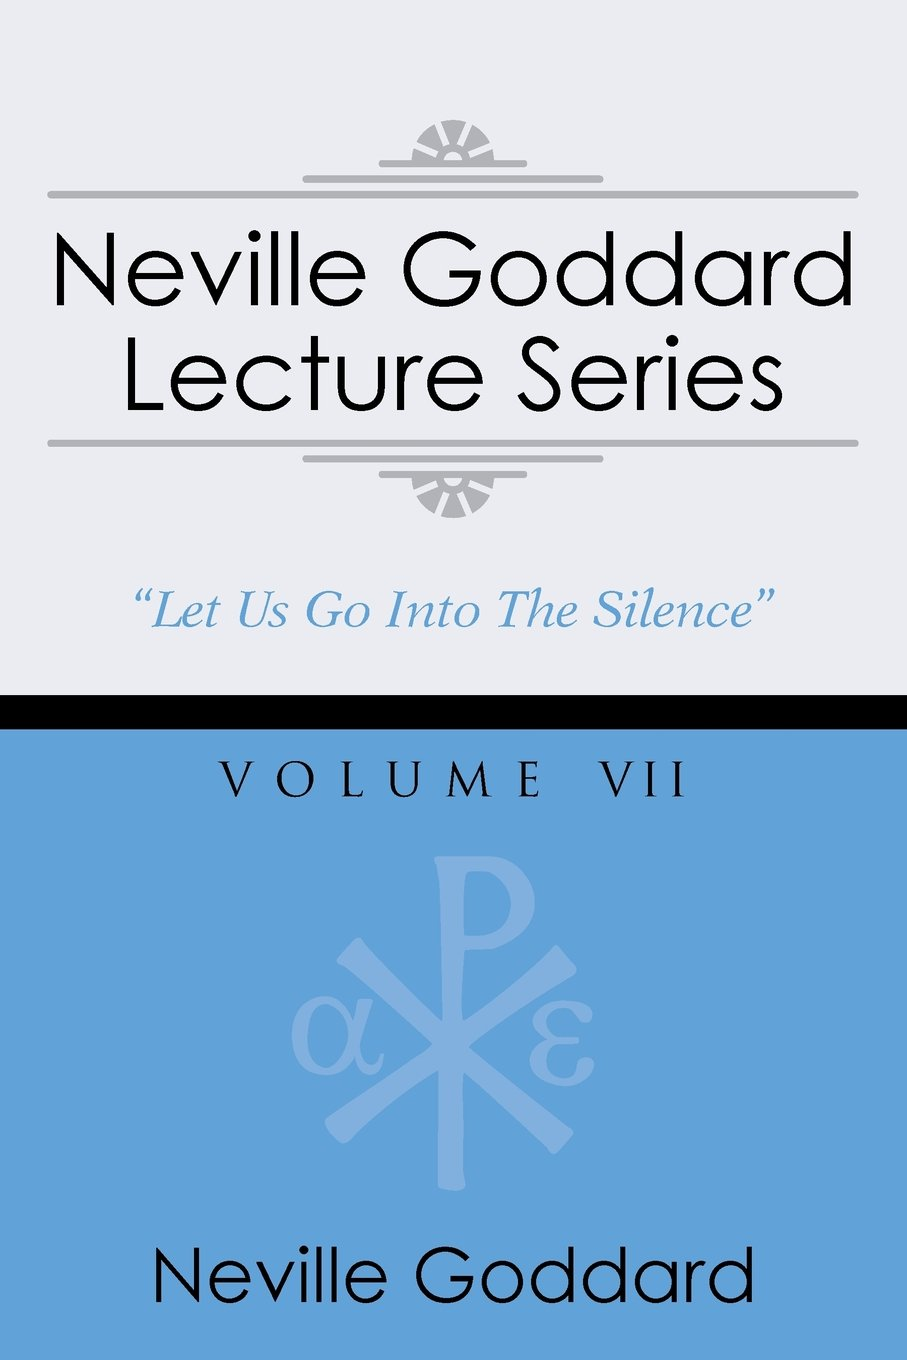 Neville Goddard Lecture Series, Volume VII: (A Gnostic Audio Selection, Includes Free Access to Streaming Audio Book) ebook